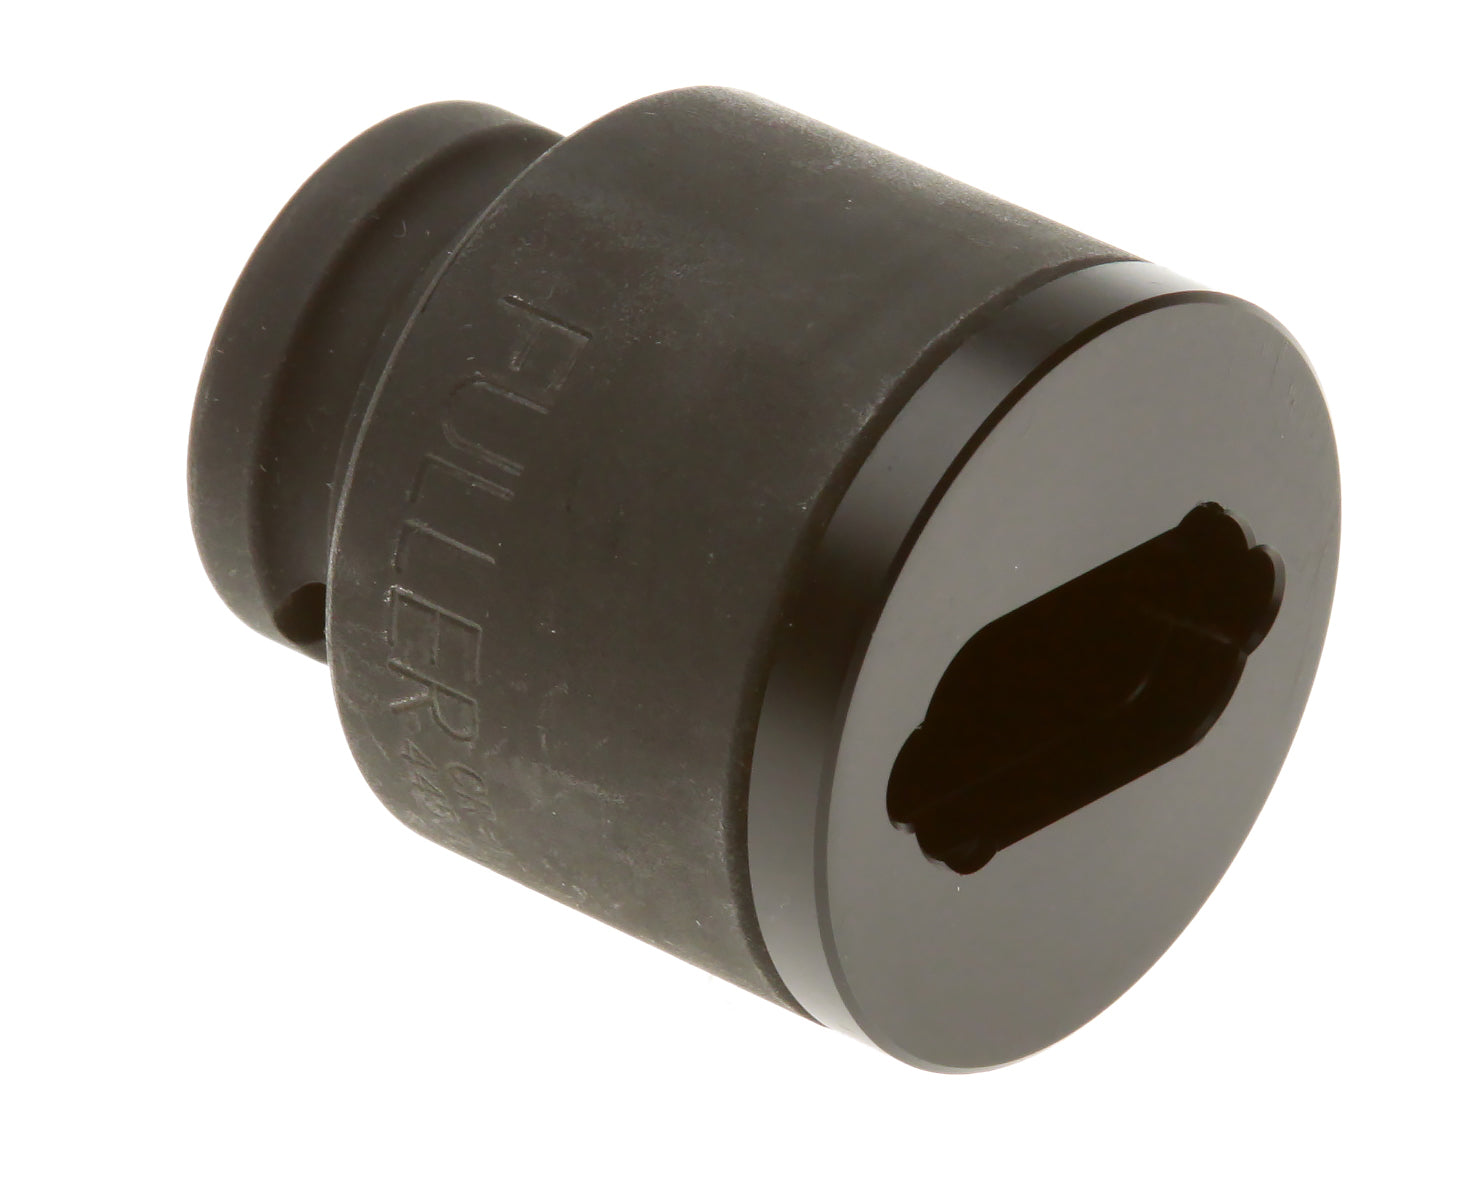 Rear Shock Top Cap Socket